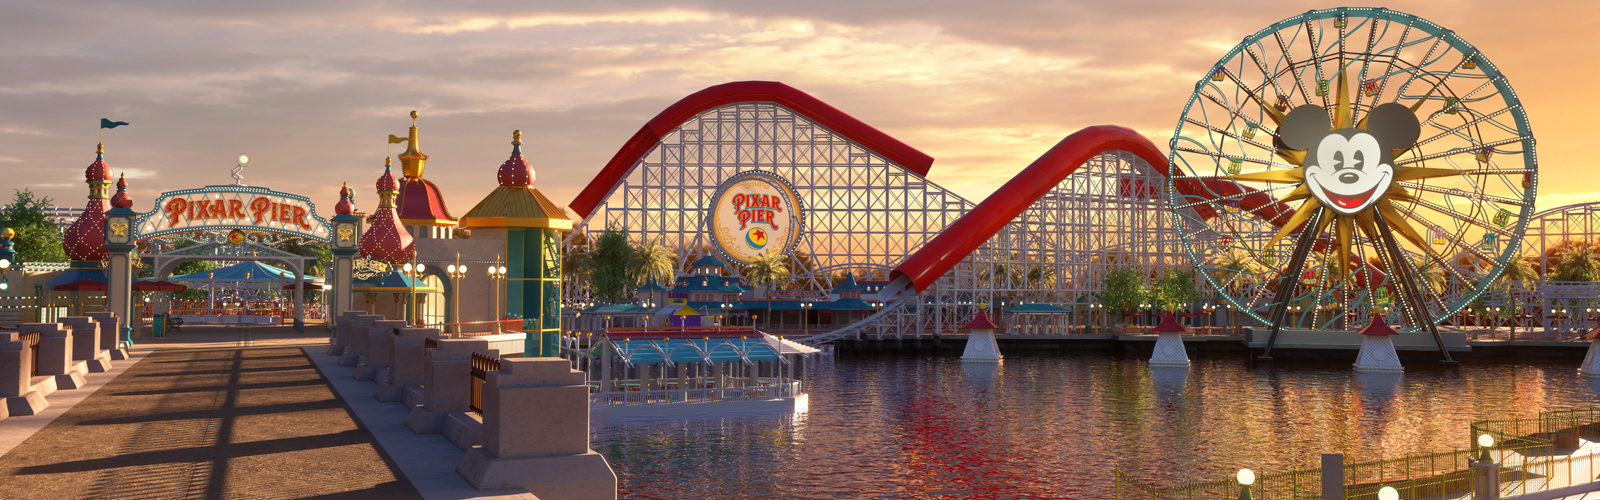 Disney's California Adventure Park - Pixar Pier